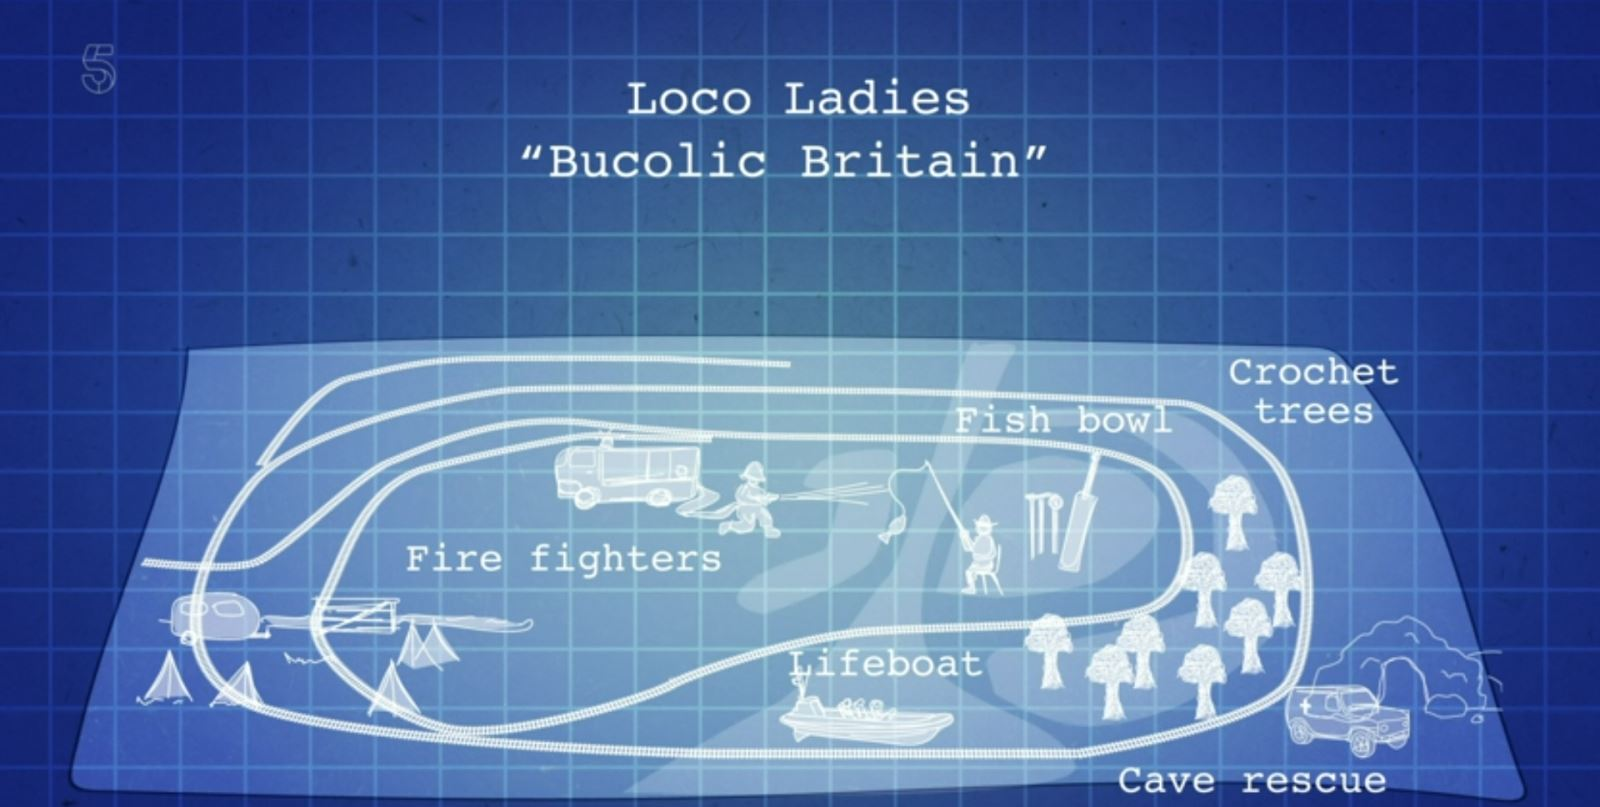 Loco Ladies Bucolic Britain